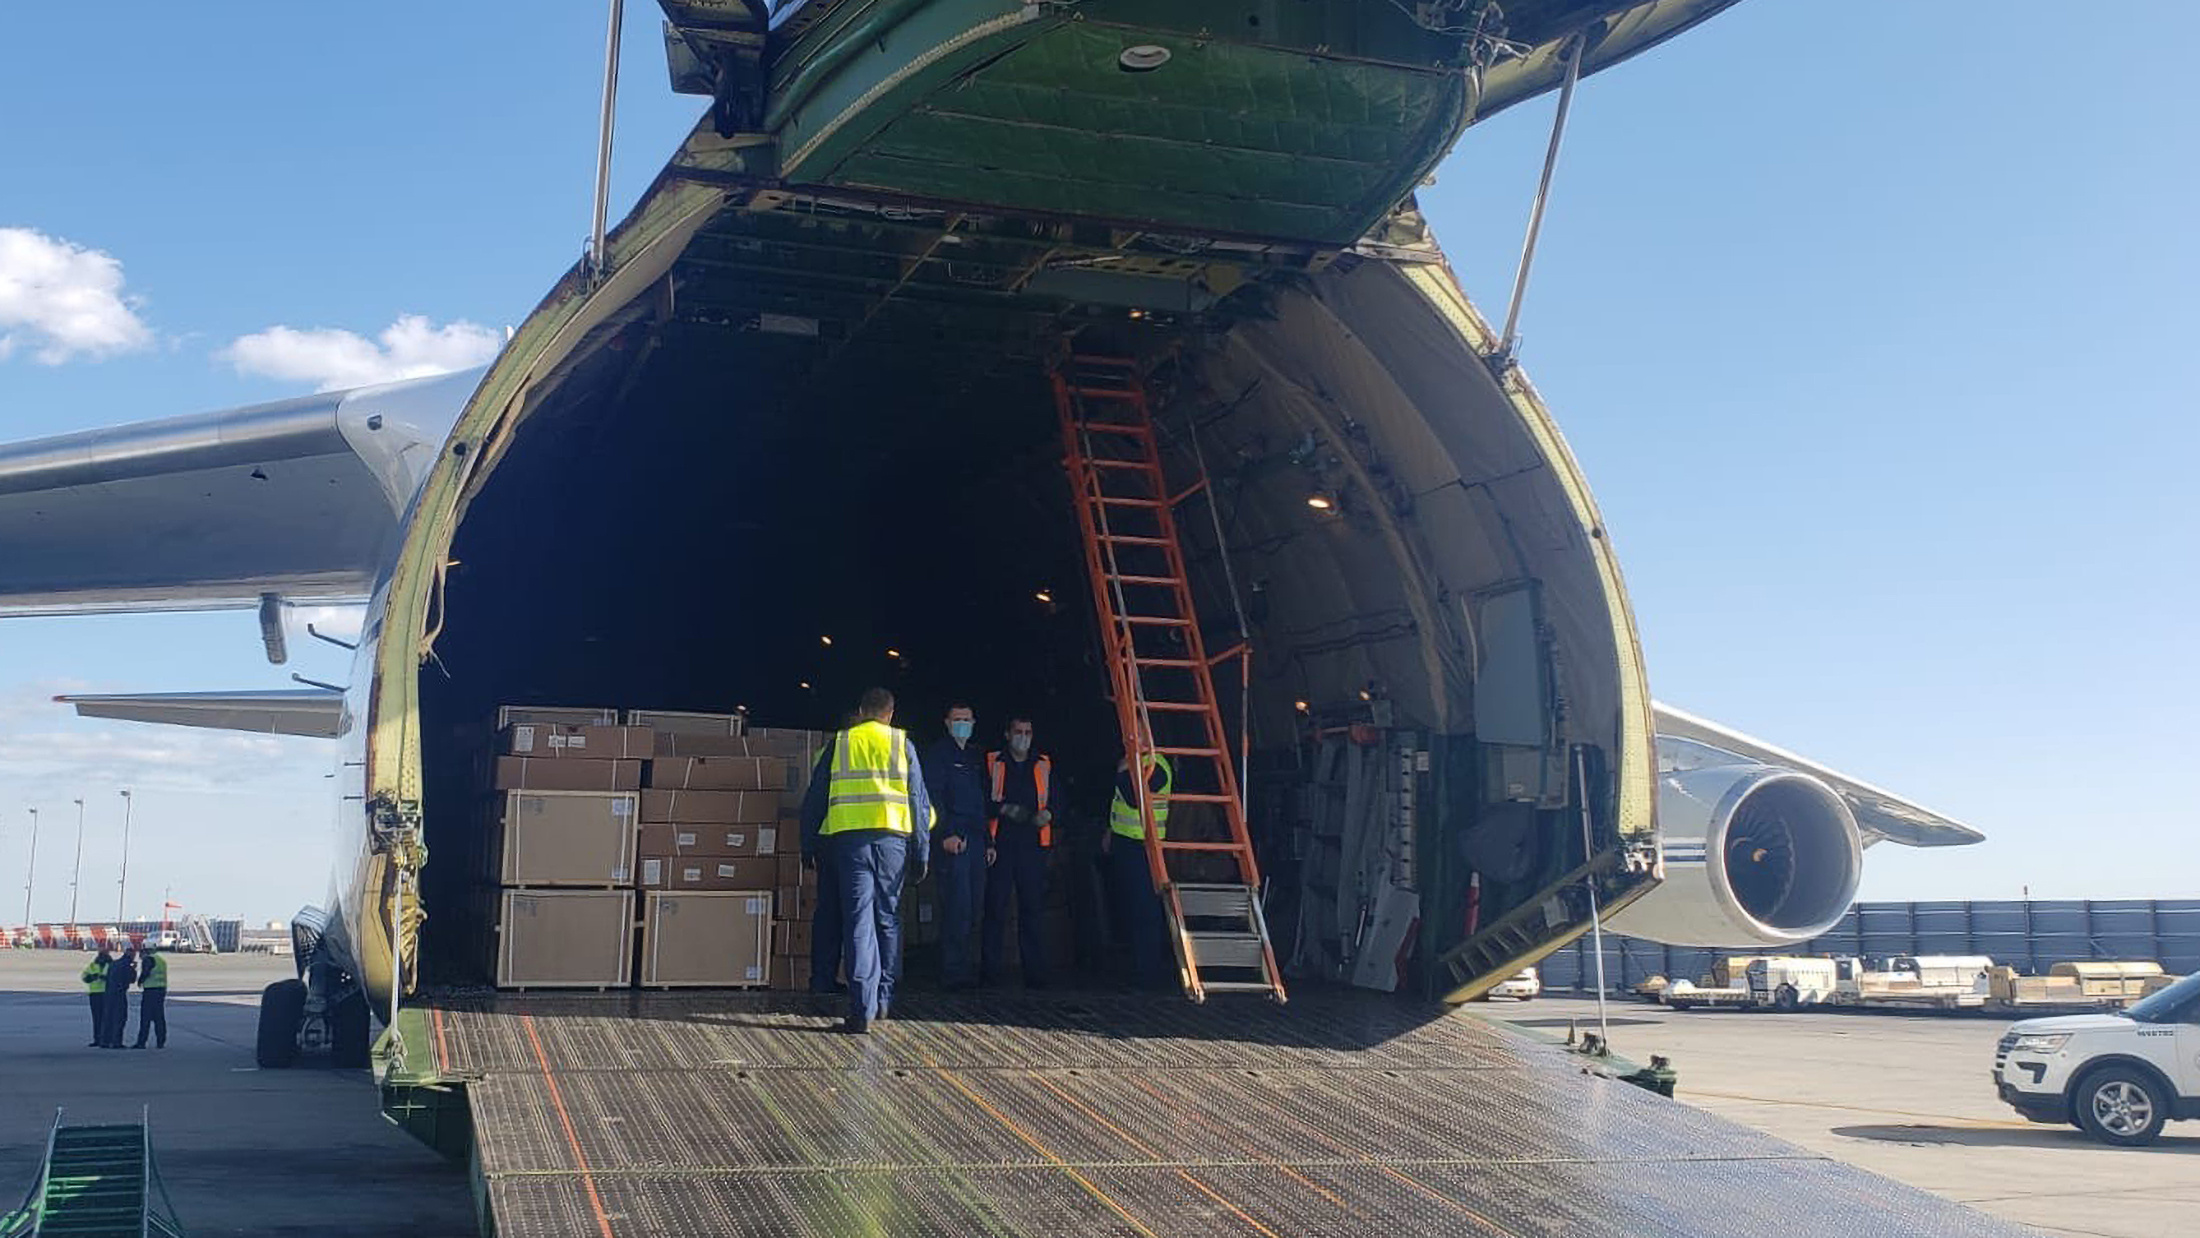 A plane carrying medical supplies from Russia landed at John F. Kennedy International Airport in New York on Wednesday, April 1.